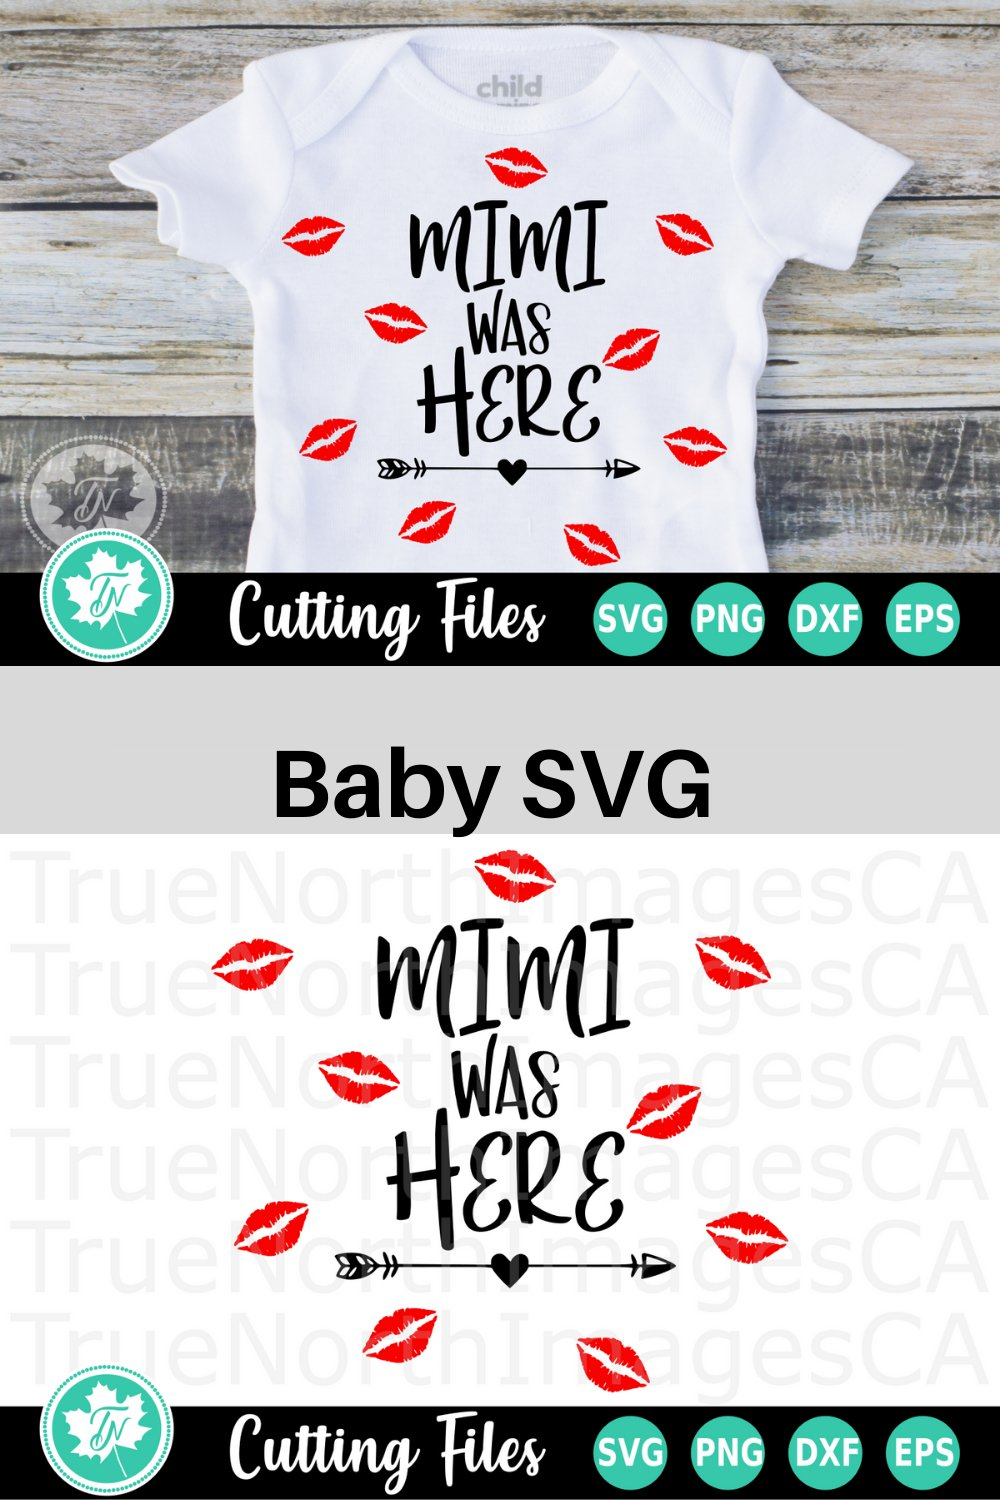 Mimi Was Here - A Baby SVG Cut File example image 2